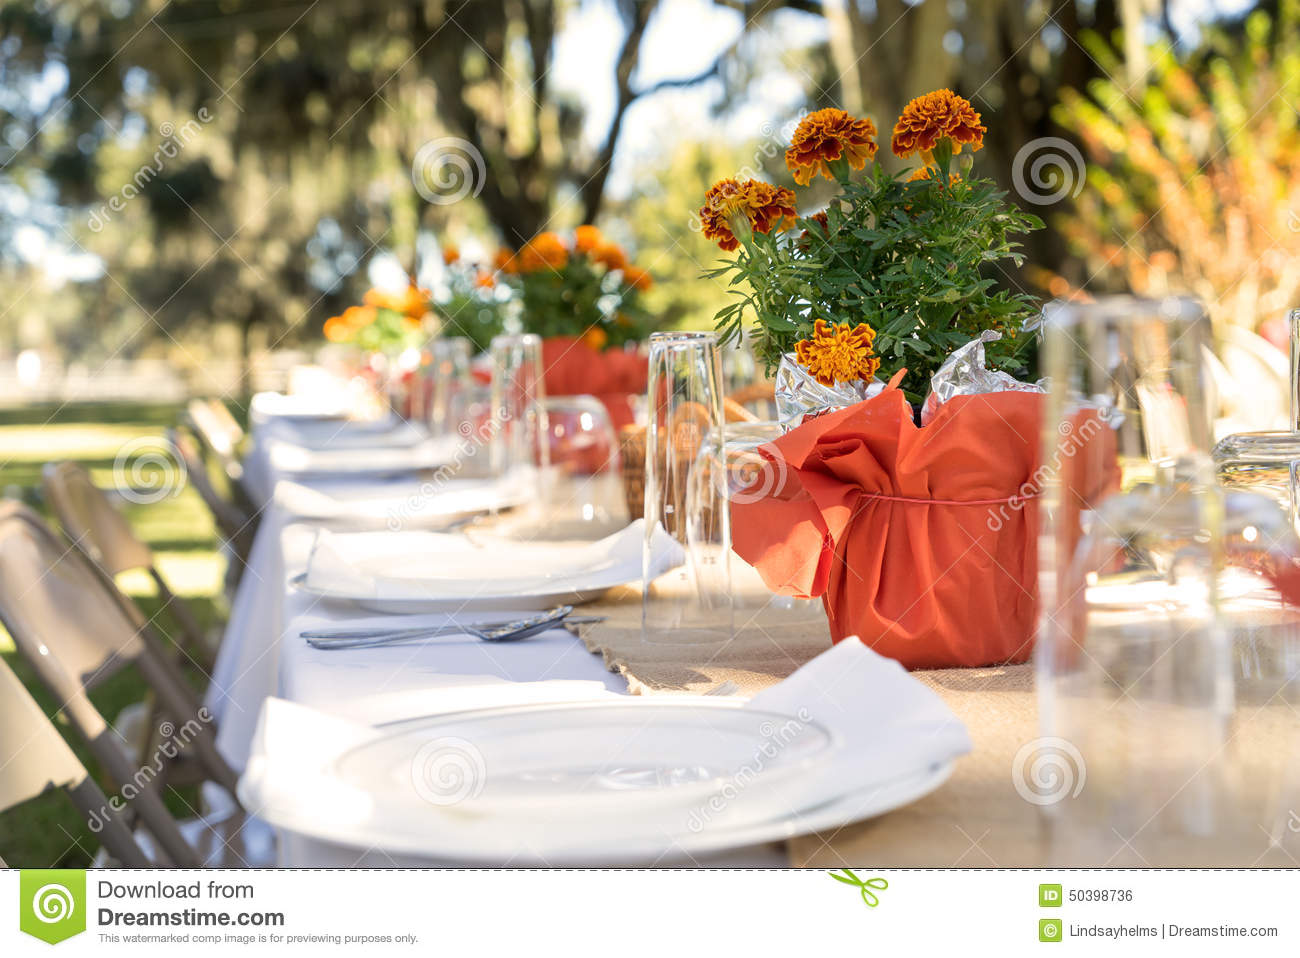 Outdoor table set for meal stock photo Image of food